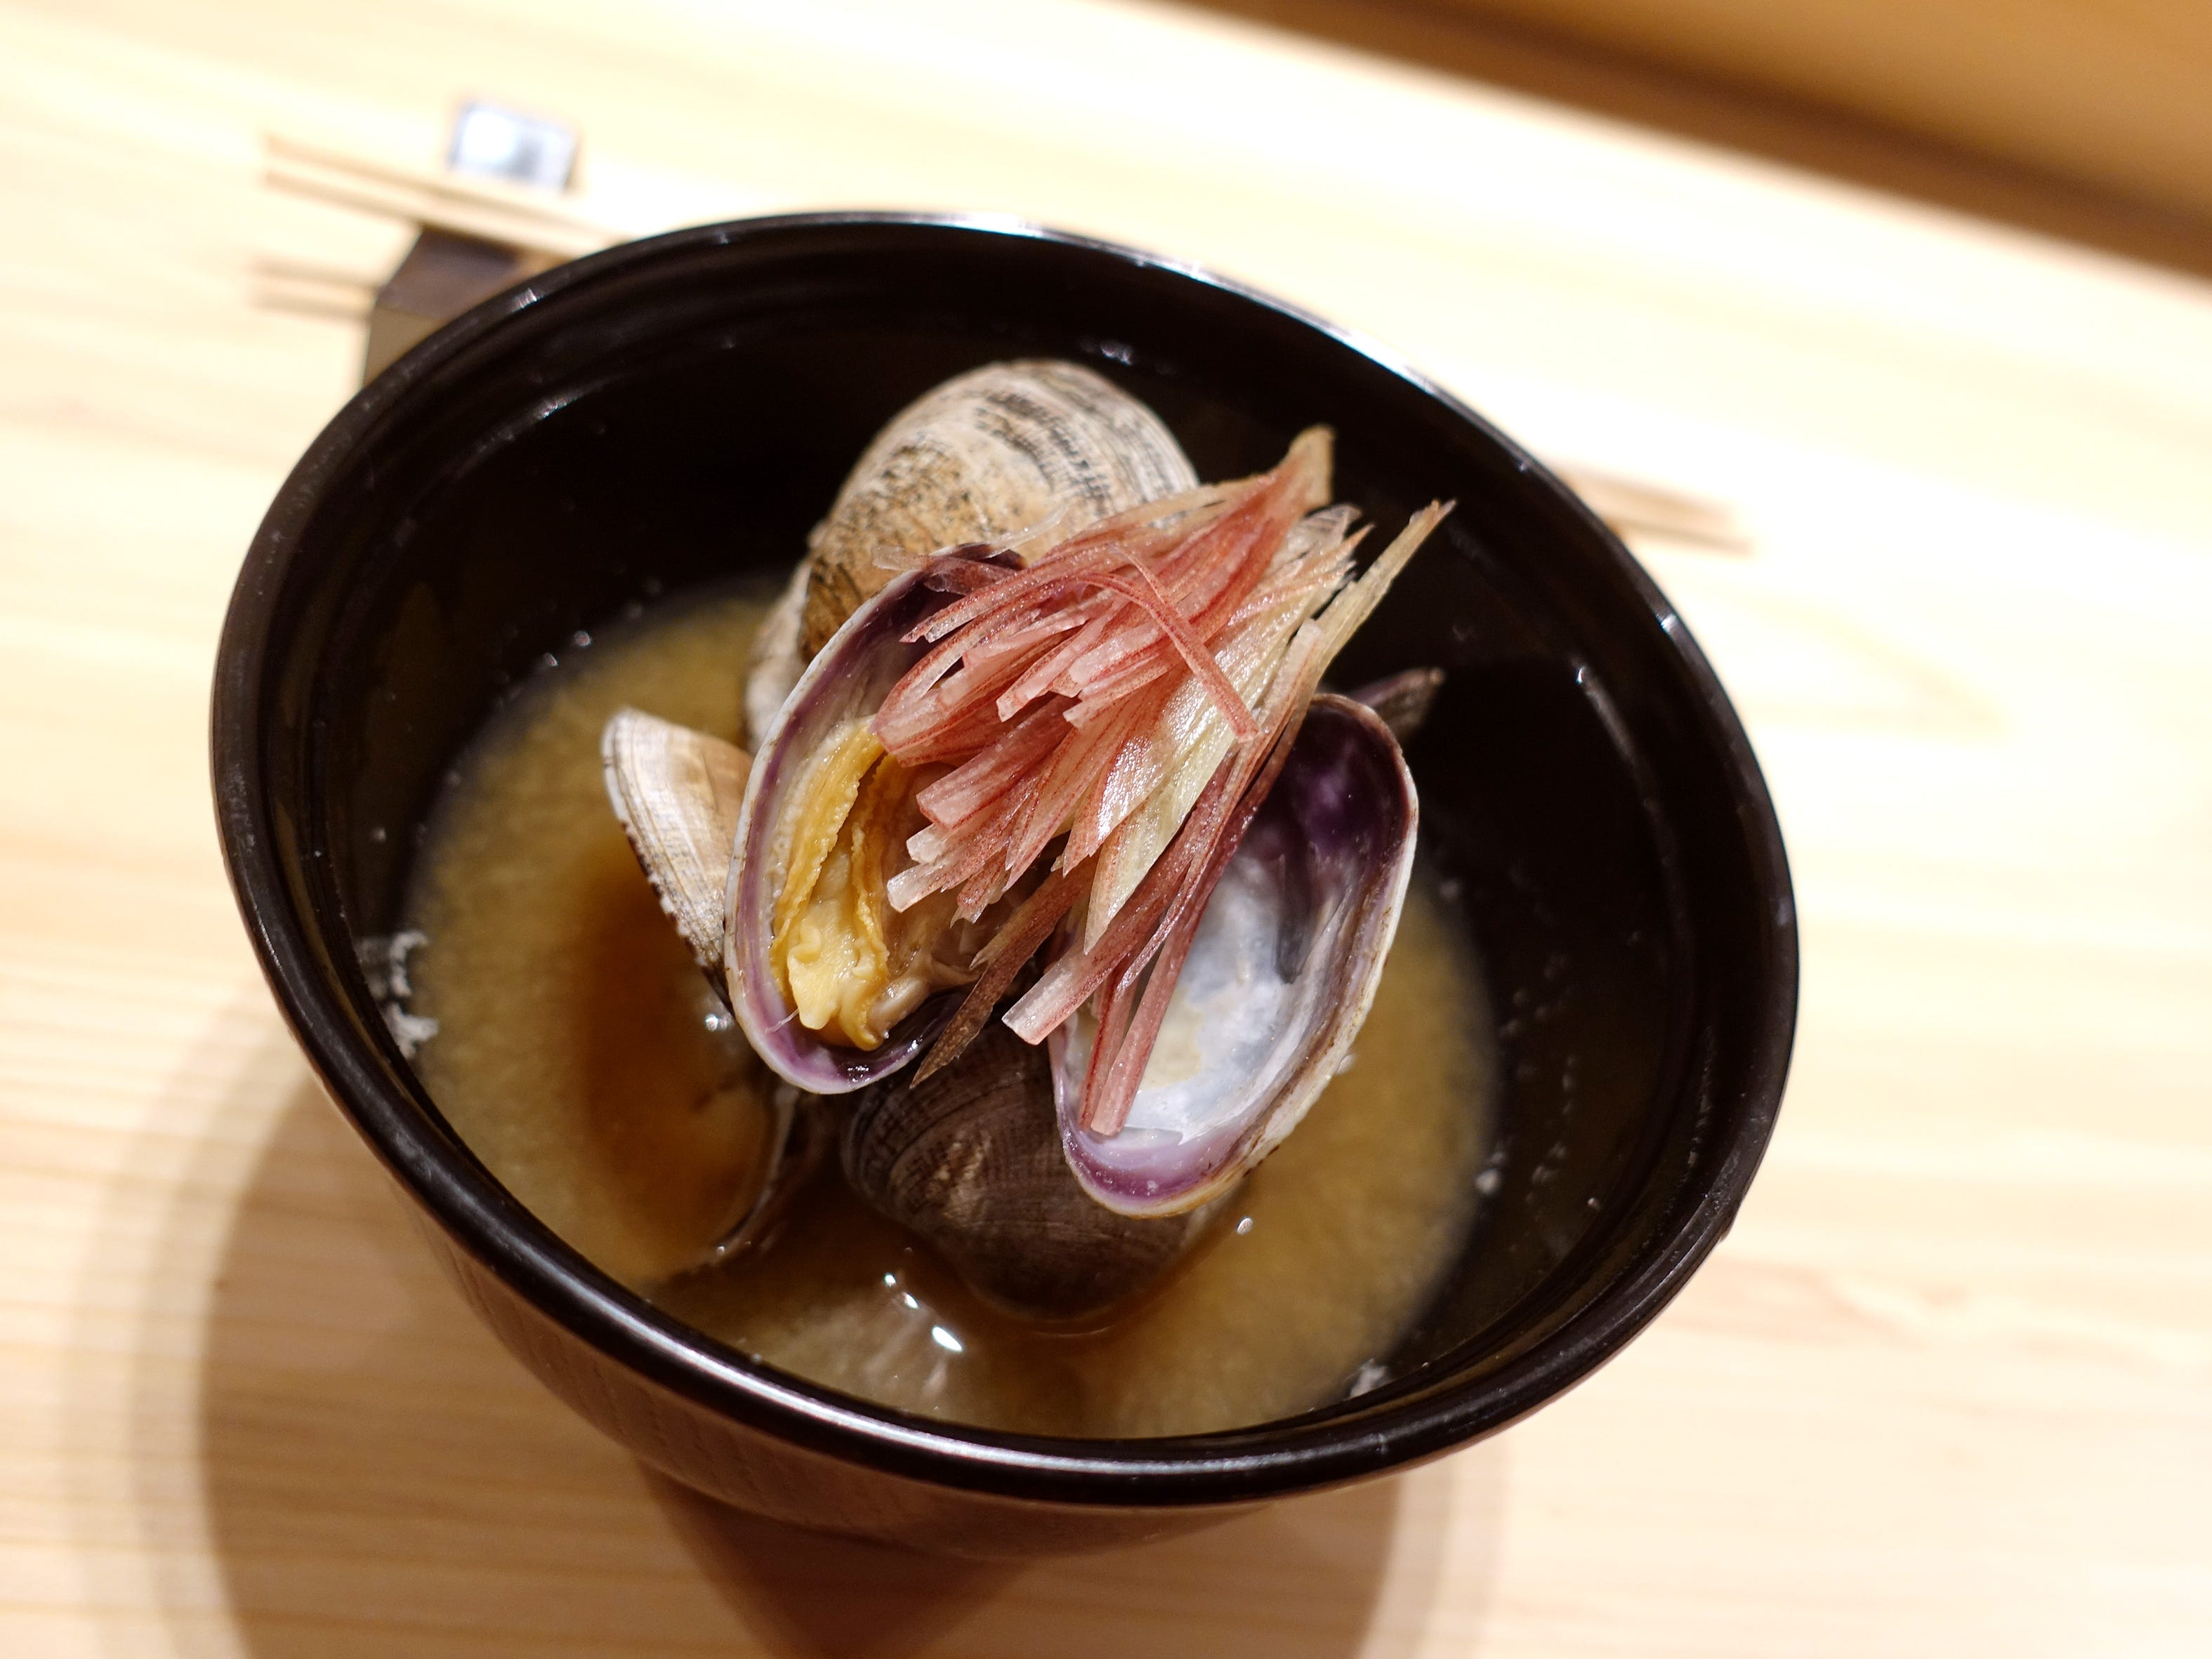 Miso soup with aka miso, saikyo miso, Manila clams and slivered myoga at ShinBay in Scottsdale.